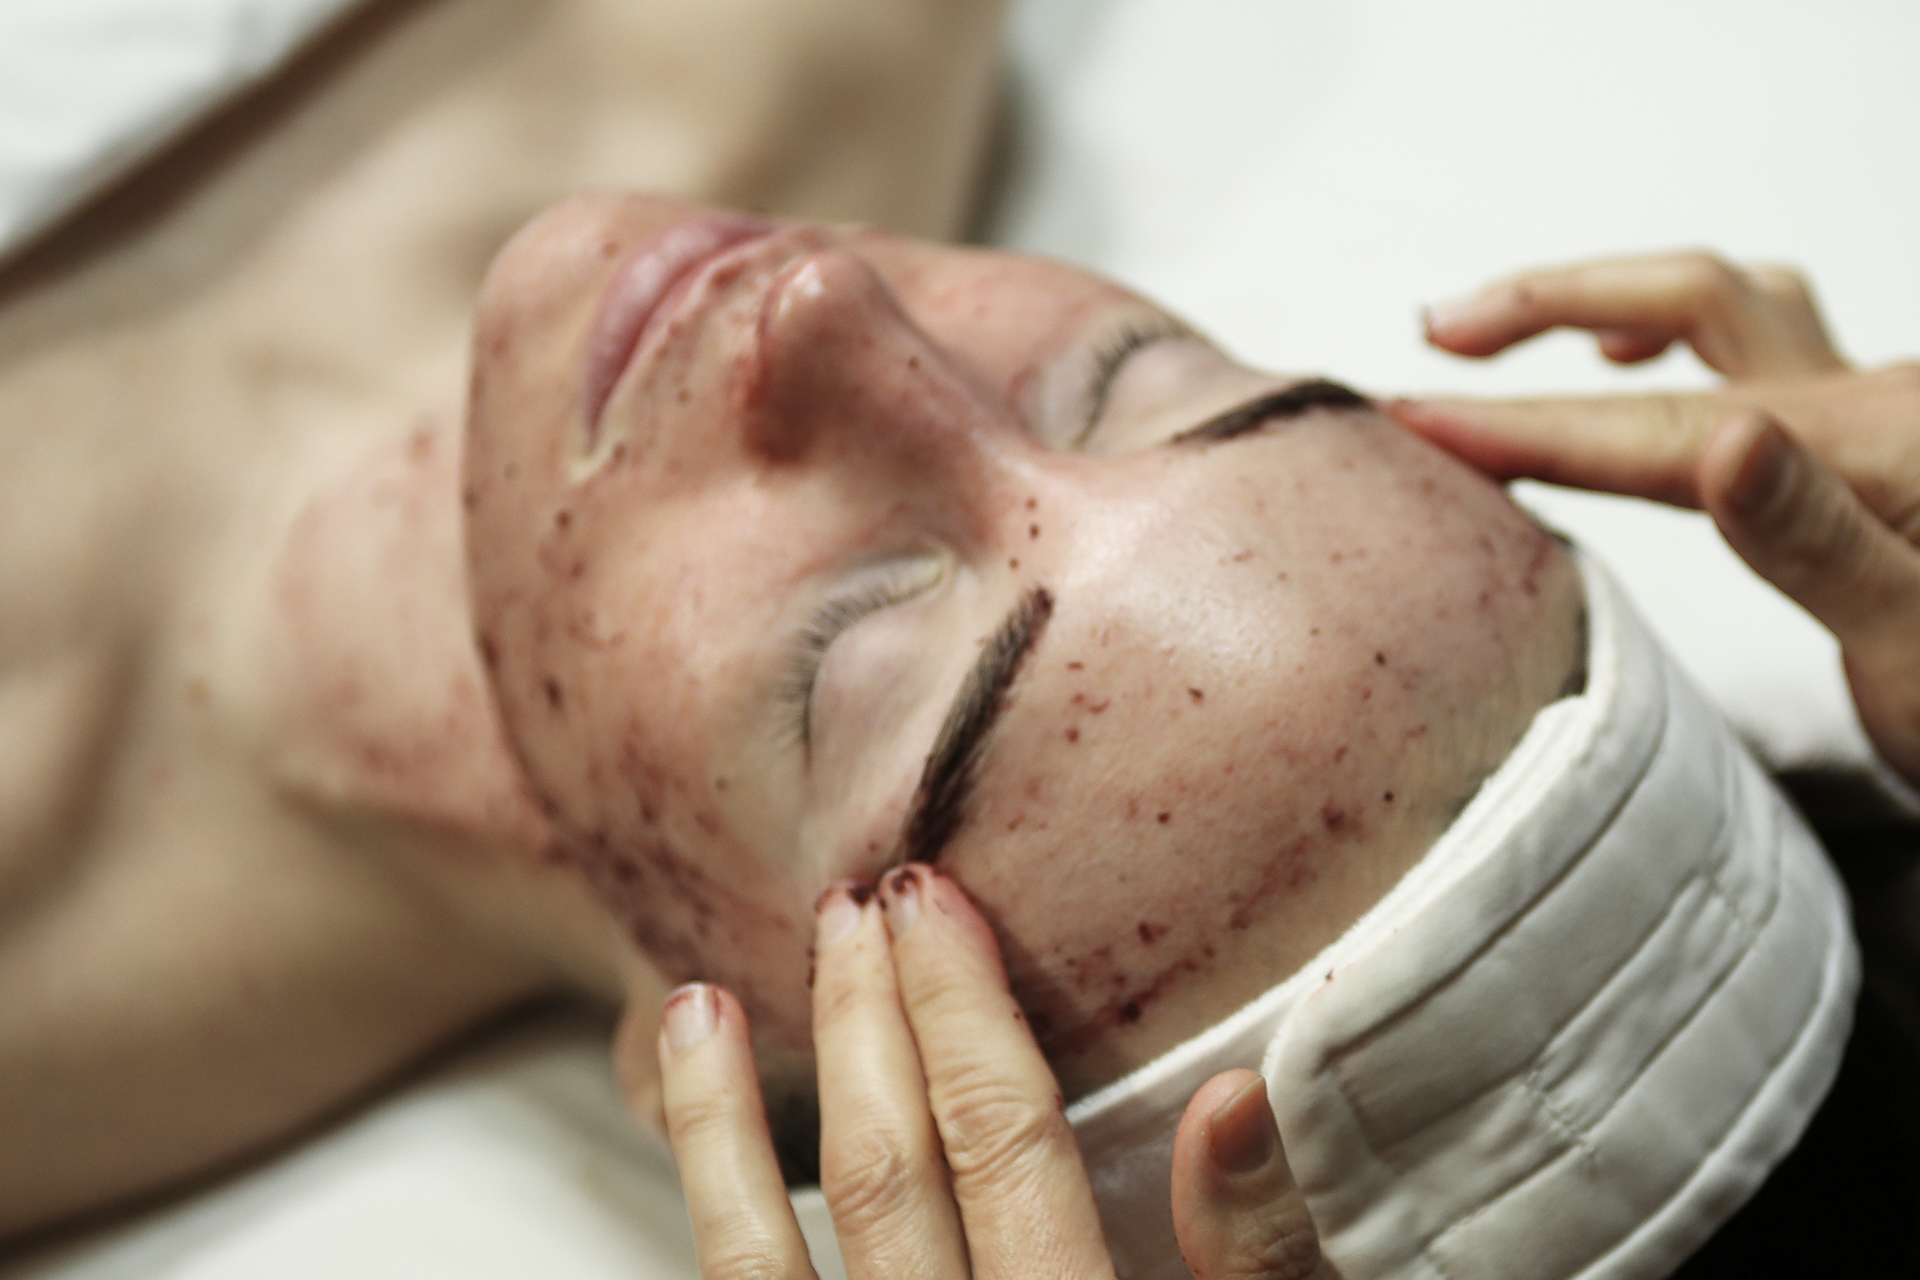 EXPRESS FACIAL   A relaxing treatment that improves skin health and appearance in just 30 minutes. Includes cleansing, 2-in-1 exfoliation/hydrating mask under steam, toner, serum, and moisturizer.  30-minute session: $40